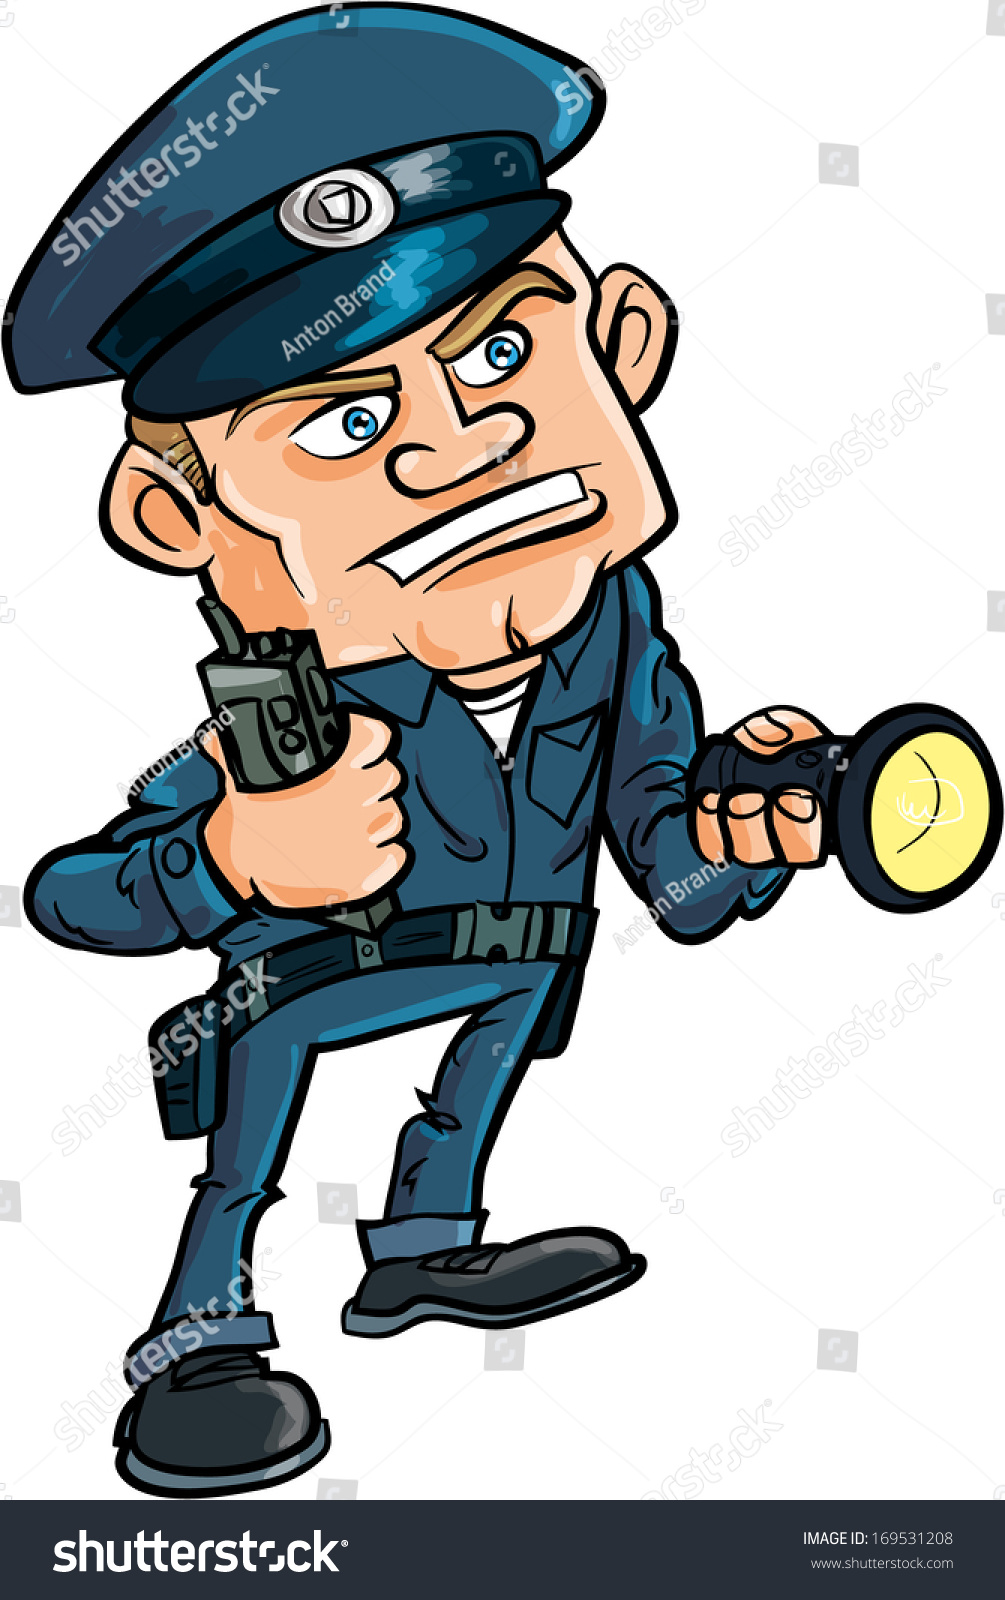 watchman clipart - photo #15